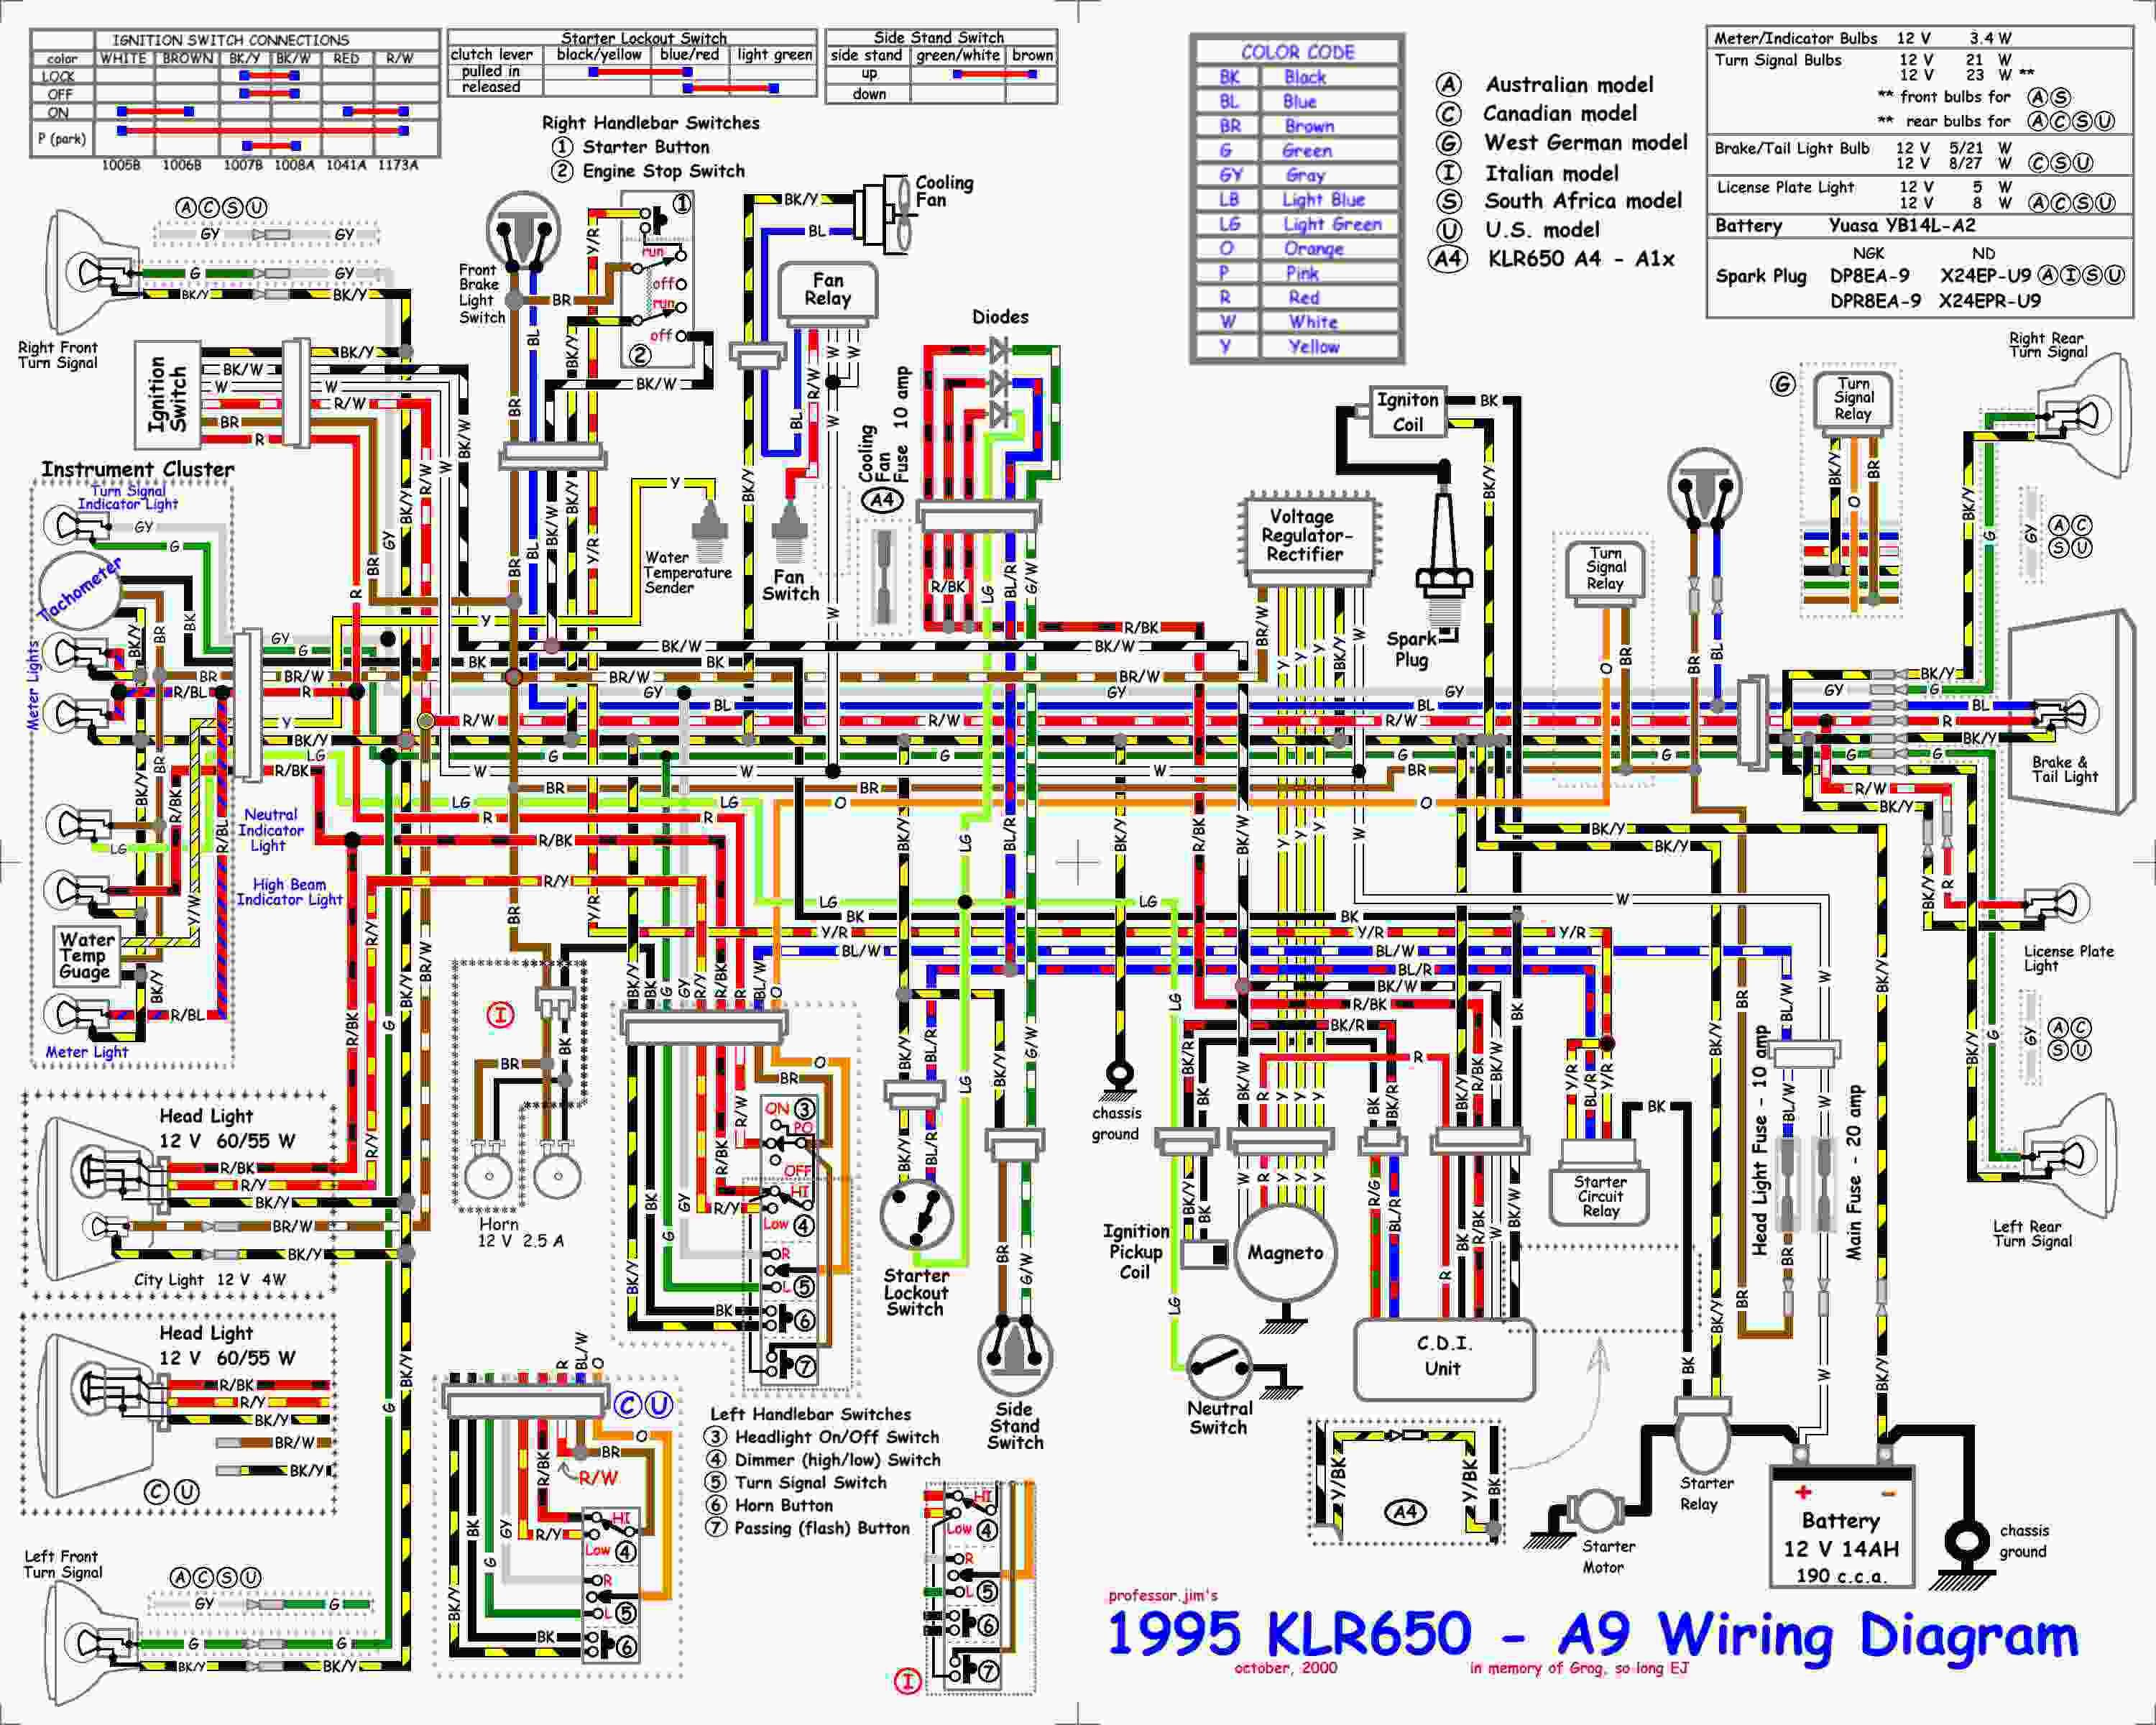 image result for cucv wiring diagram automotive pinterest diagram rh pinterest com GM Wiring Diagrams For Dummies Alternator Wiring Schematic